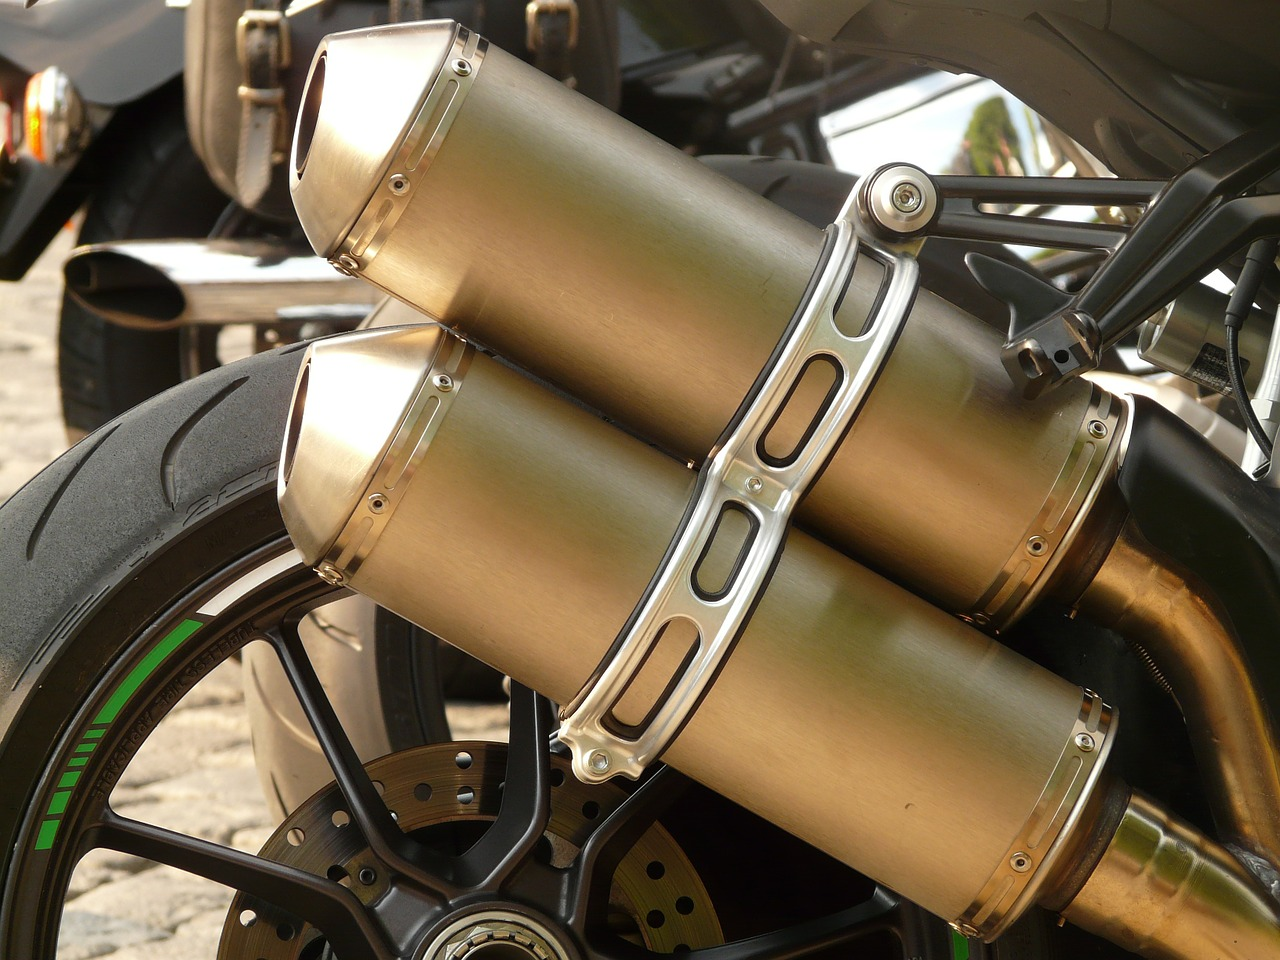 exhaust,exhaust pipes,motorcycle,metal,free pictures, free photos, free images, royalty free, free illustrations, public domain